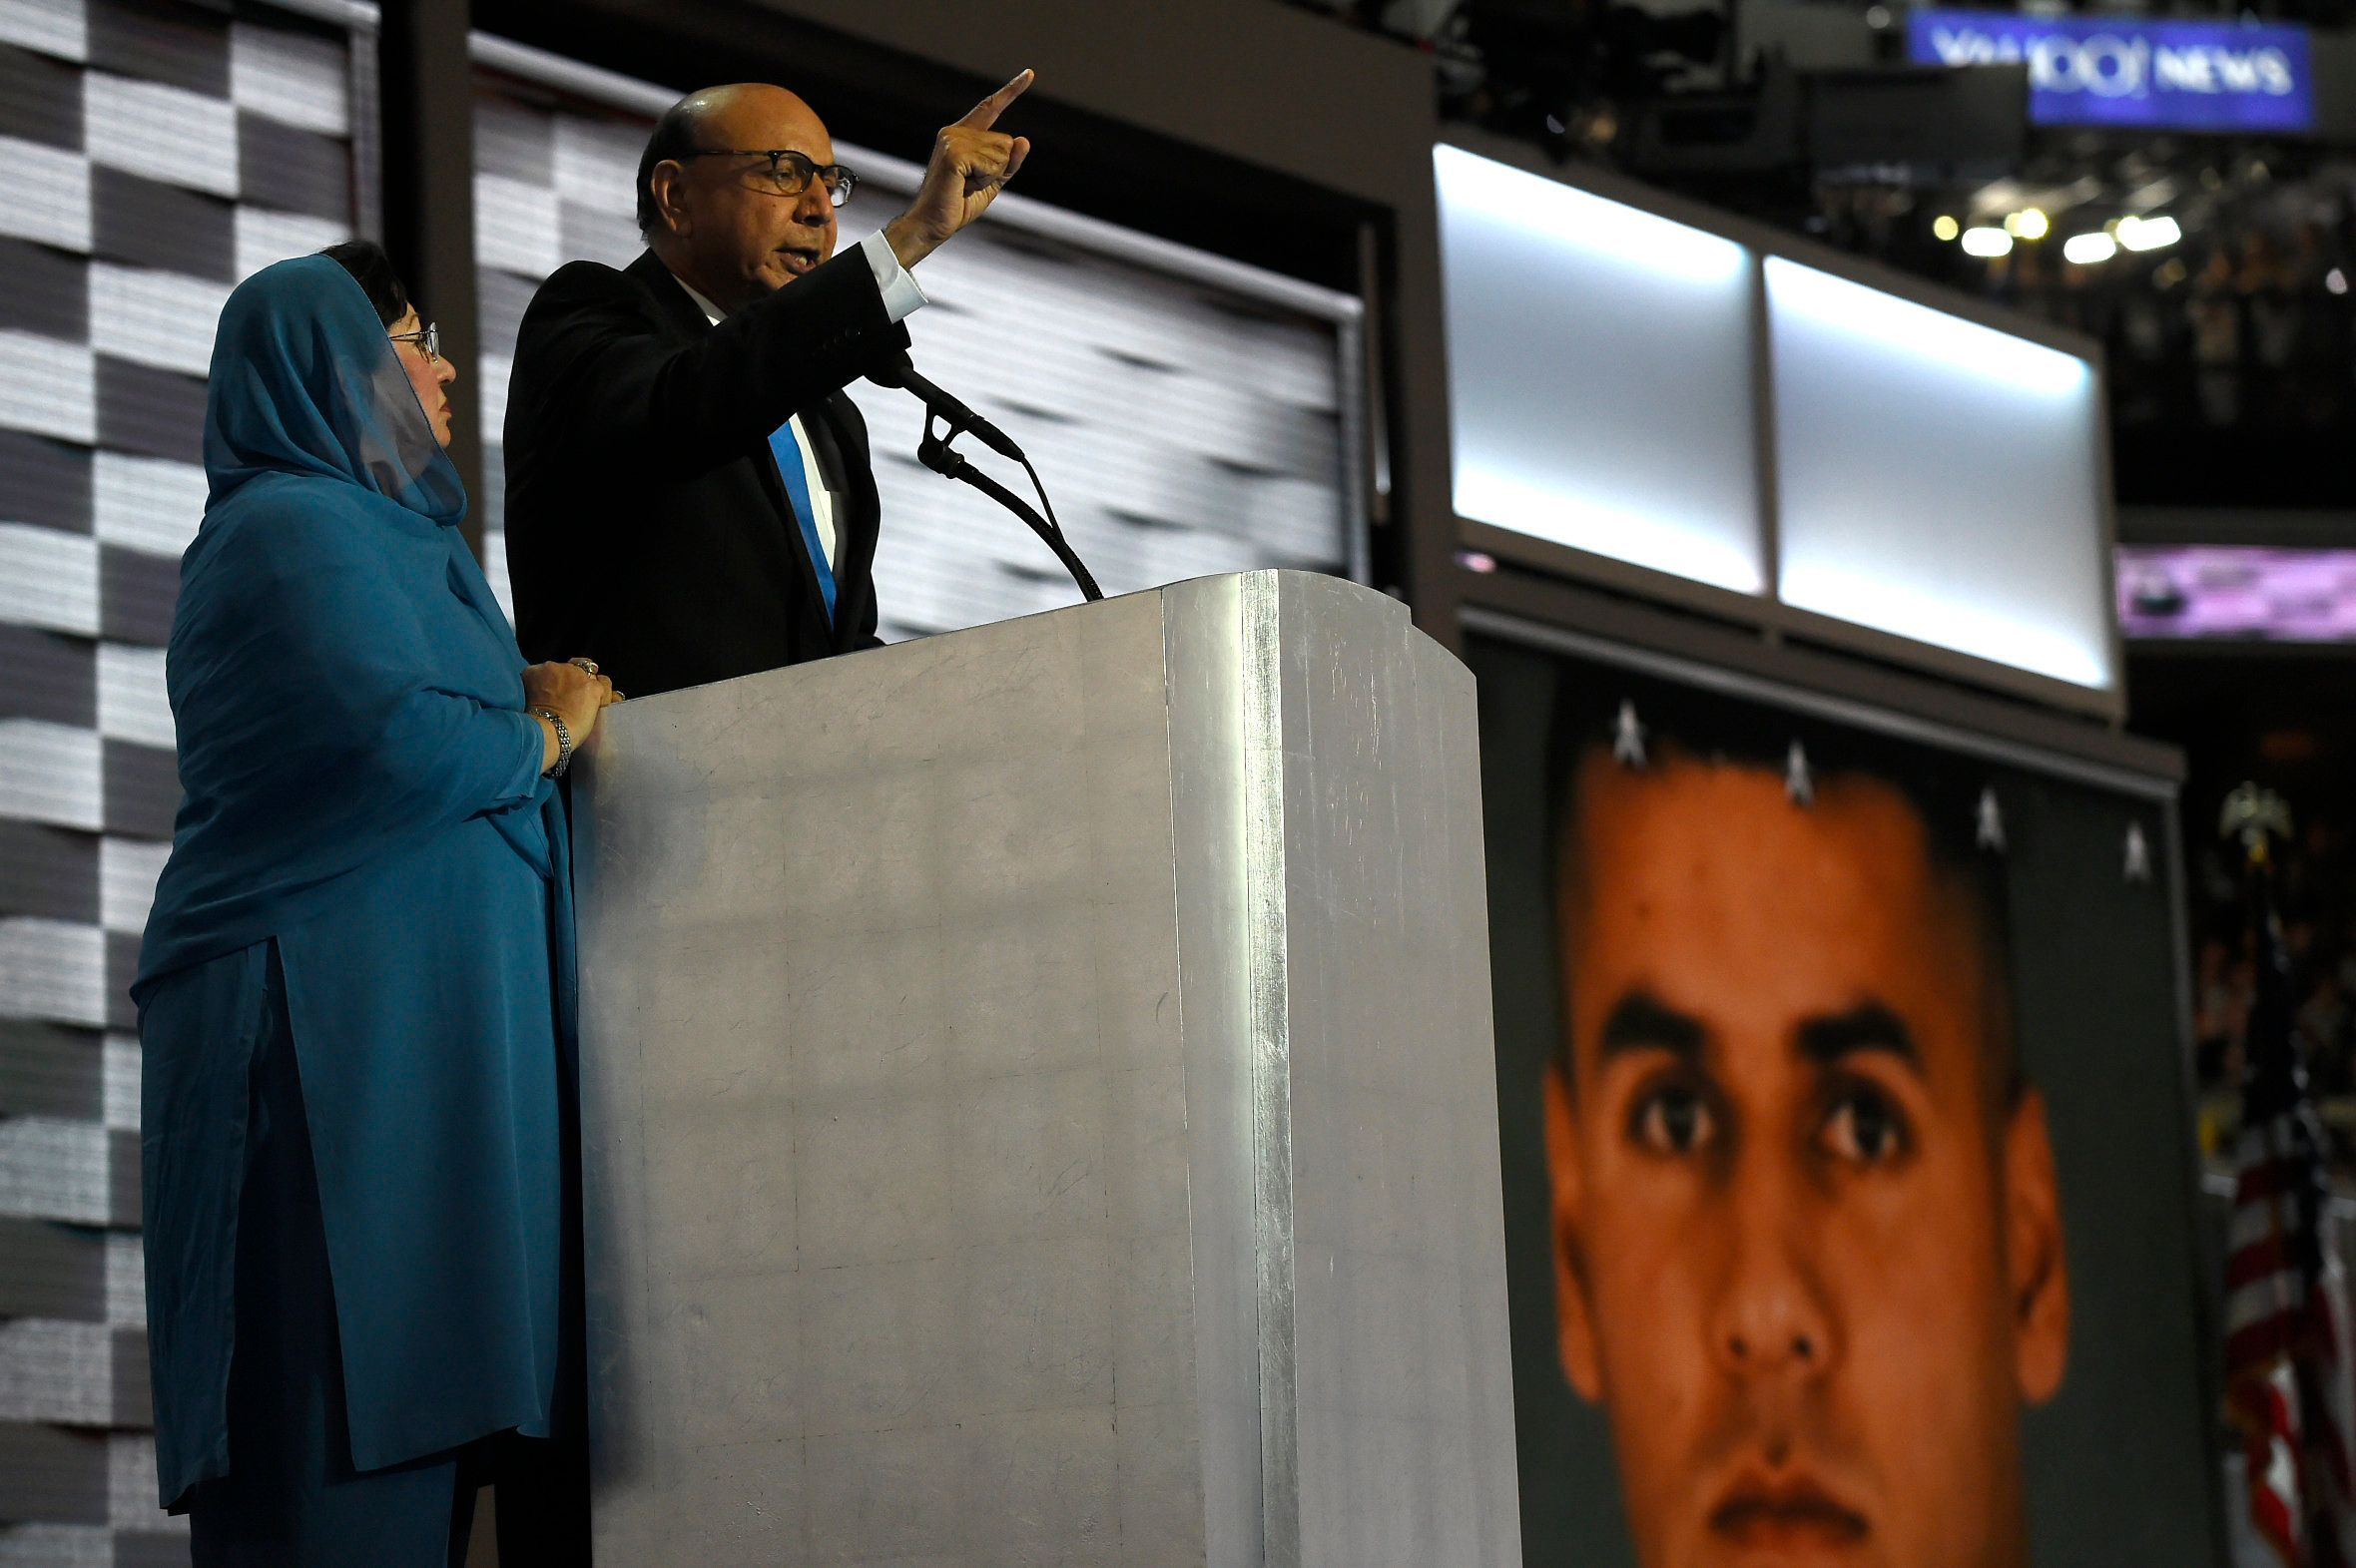 PHILADELPHIA, PA - JULY 28: Khizr Khan delivers a speech with his wife Ghazala Khan standing next to him at the Democratic National Convention in Philadelphia on July 28, 2016. An image of their fallen son, U.S. Army Capt. Humayun Khan, who was killed in Iraq in 2004 is shown on a video screen behind them. Donald Trump said that Ms. Khan had 'nothing to say.'  (Photo by Michael Robinson Chavez/The Washington Post via Getty Images)